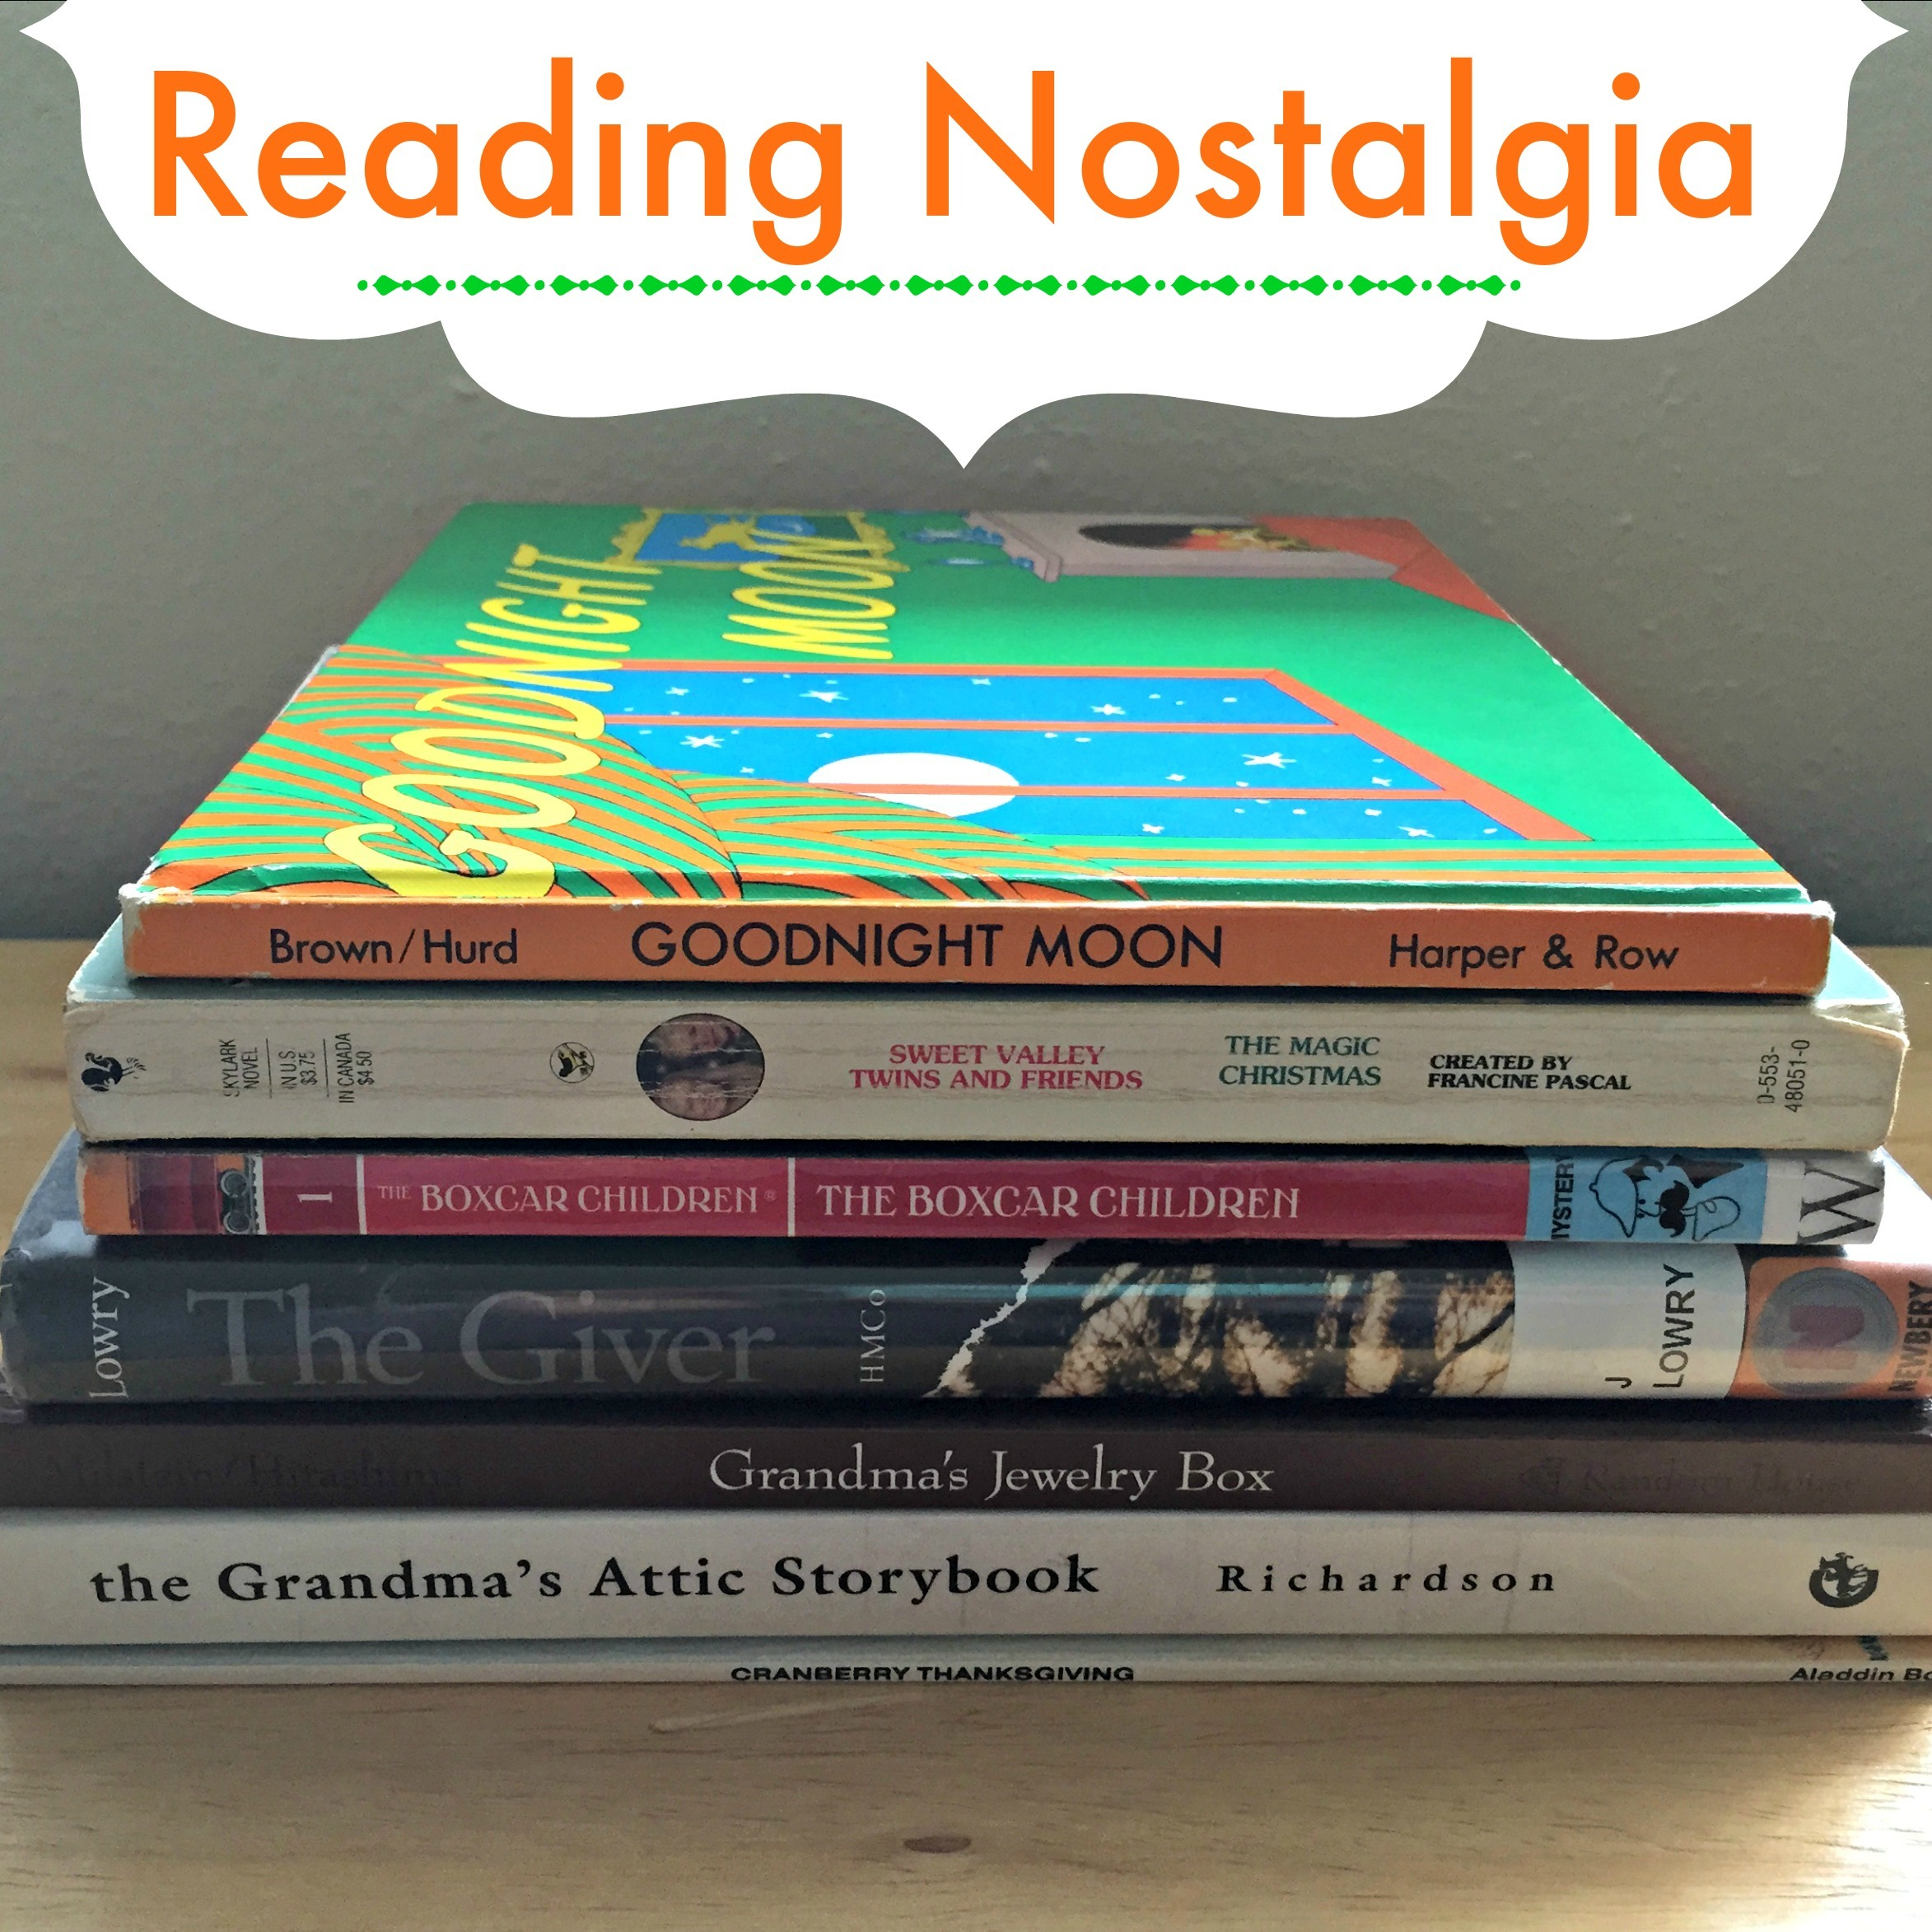 Reading Nostalgia: 7 Books That Shaped My Youth